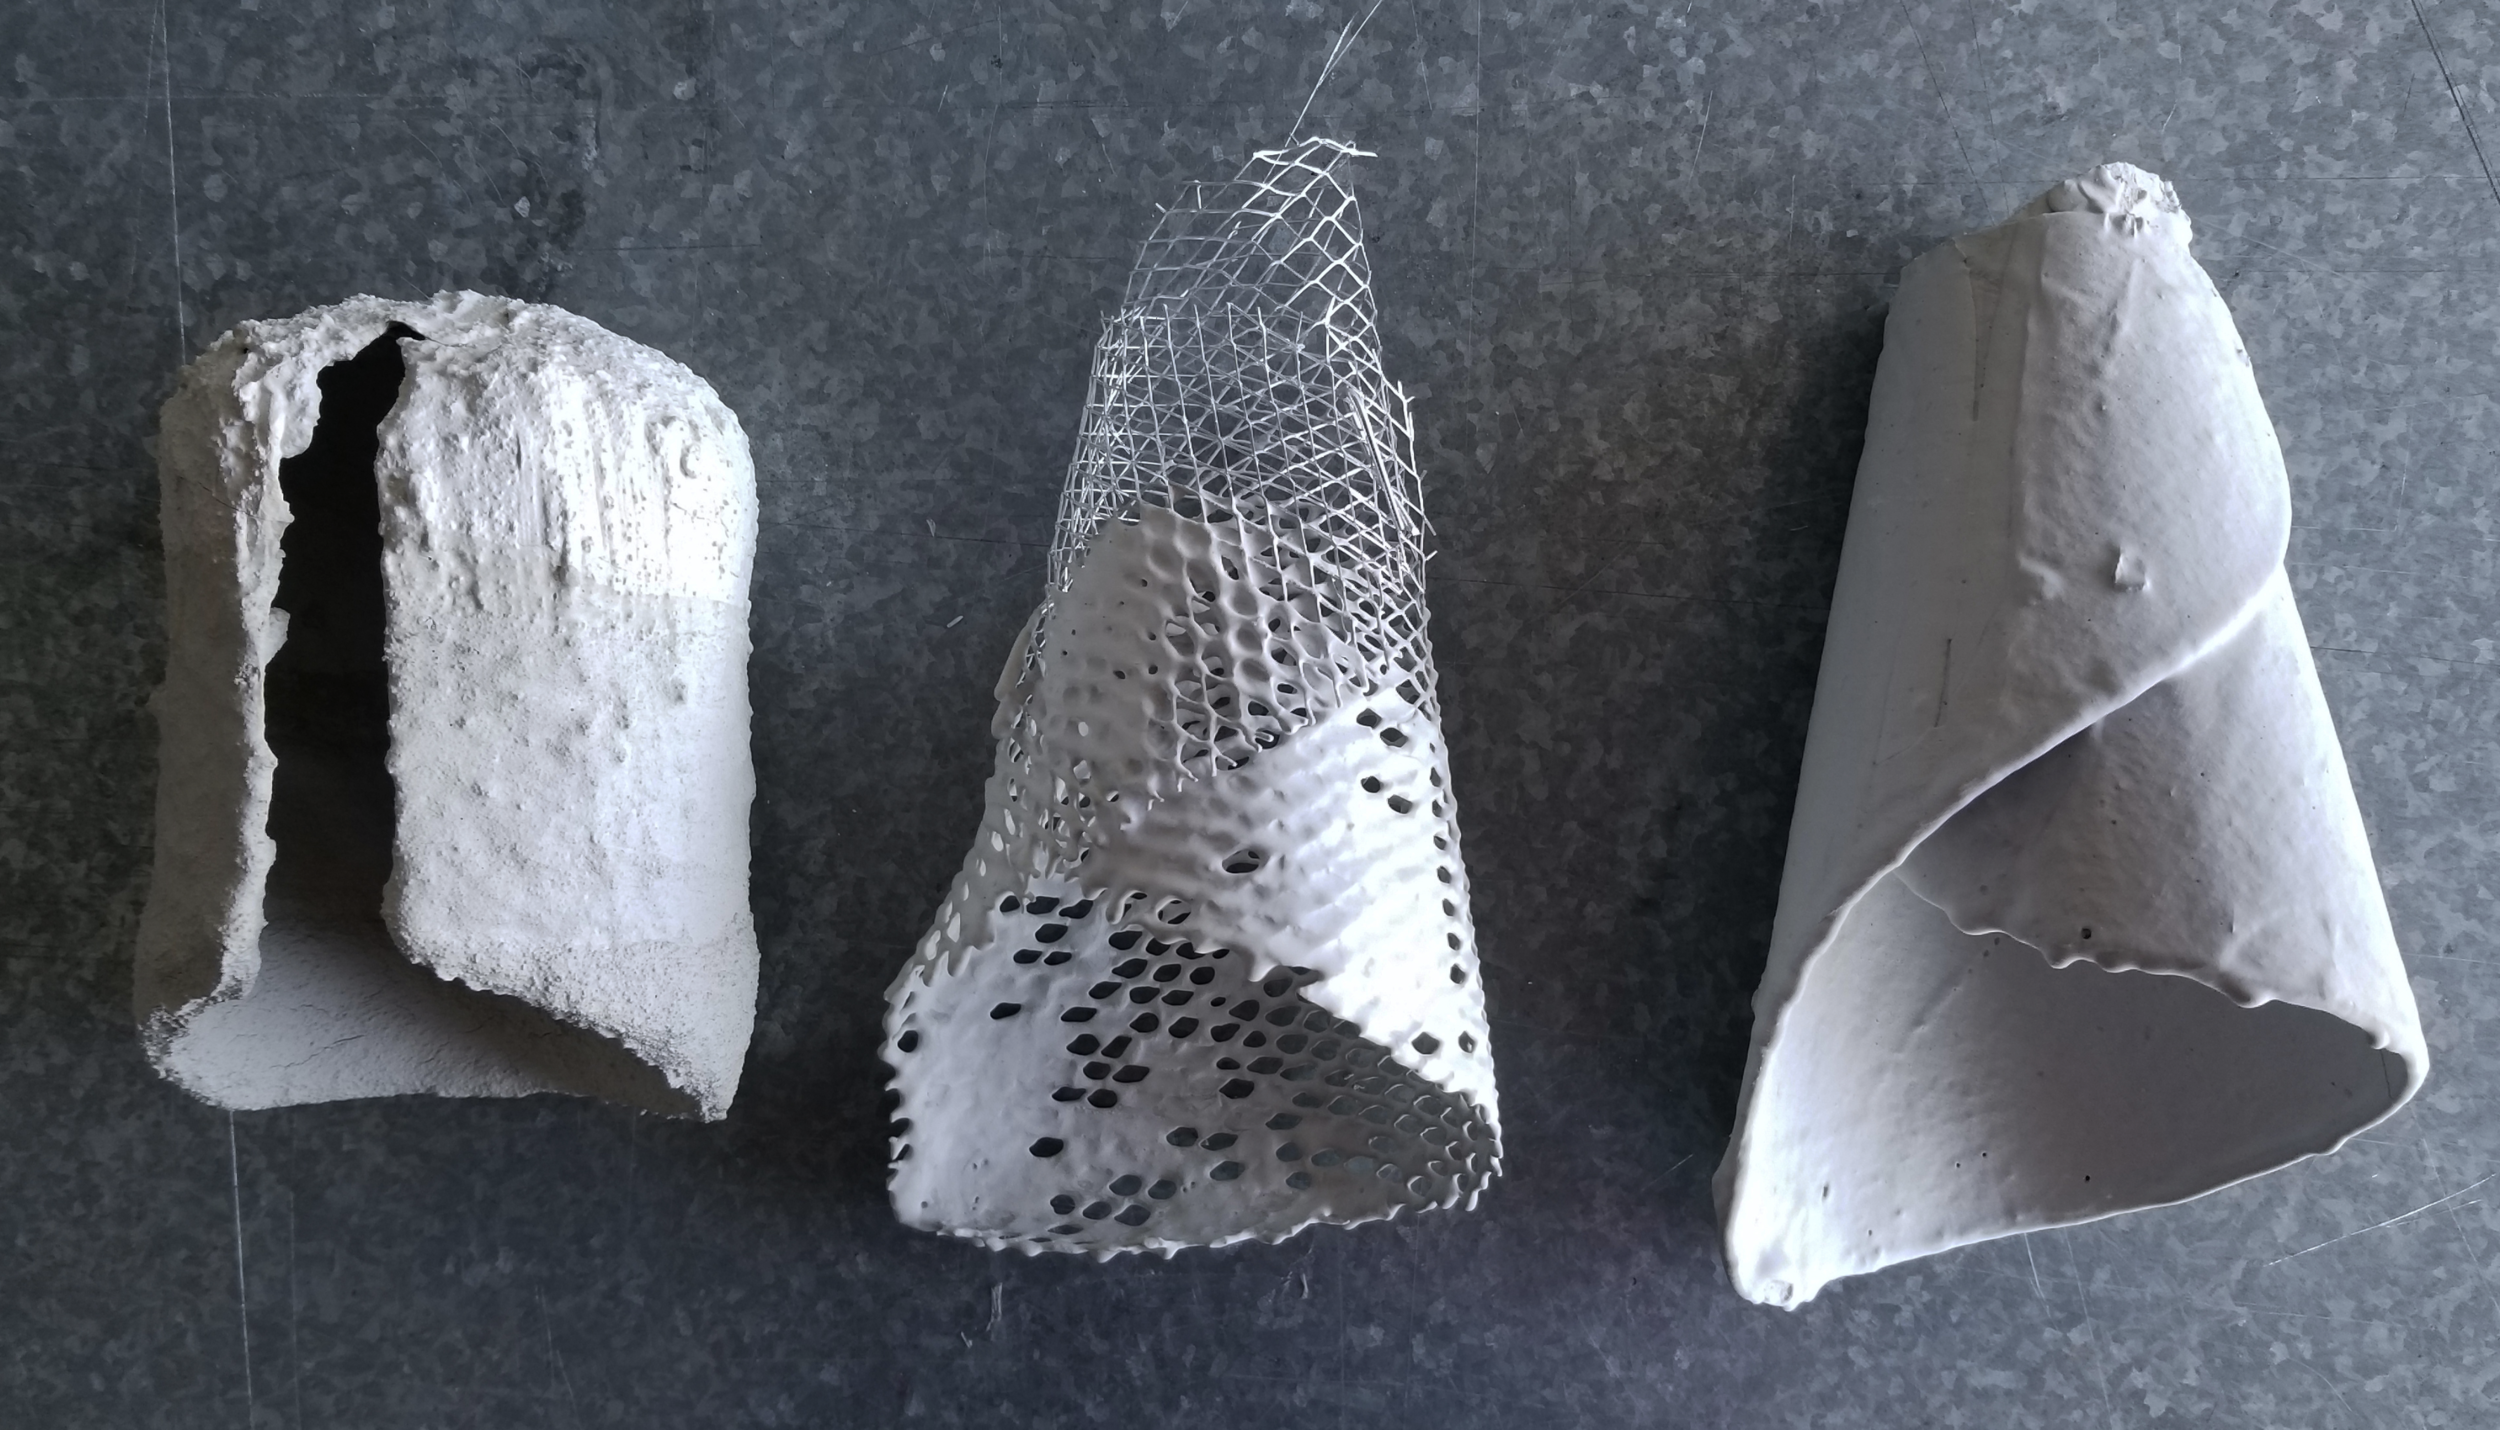 The first material test, left, is a metal mesh shell dipped in 3 concrete mixtures   Test two, middle, is also a metal mesh, but dipped into a diluted cement and gypsum mixture  Test three demonstrates material interaction with template shape, right, is a rag paper shell template dipped twice into the mixture from test two